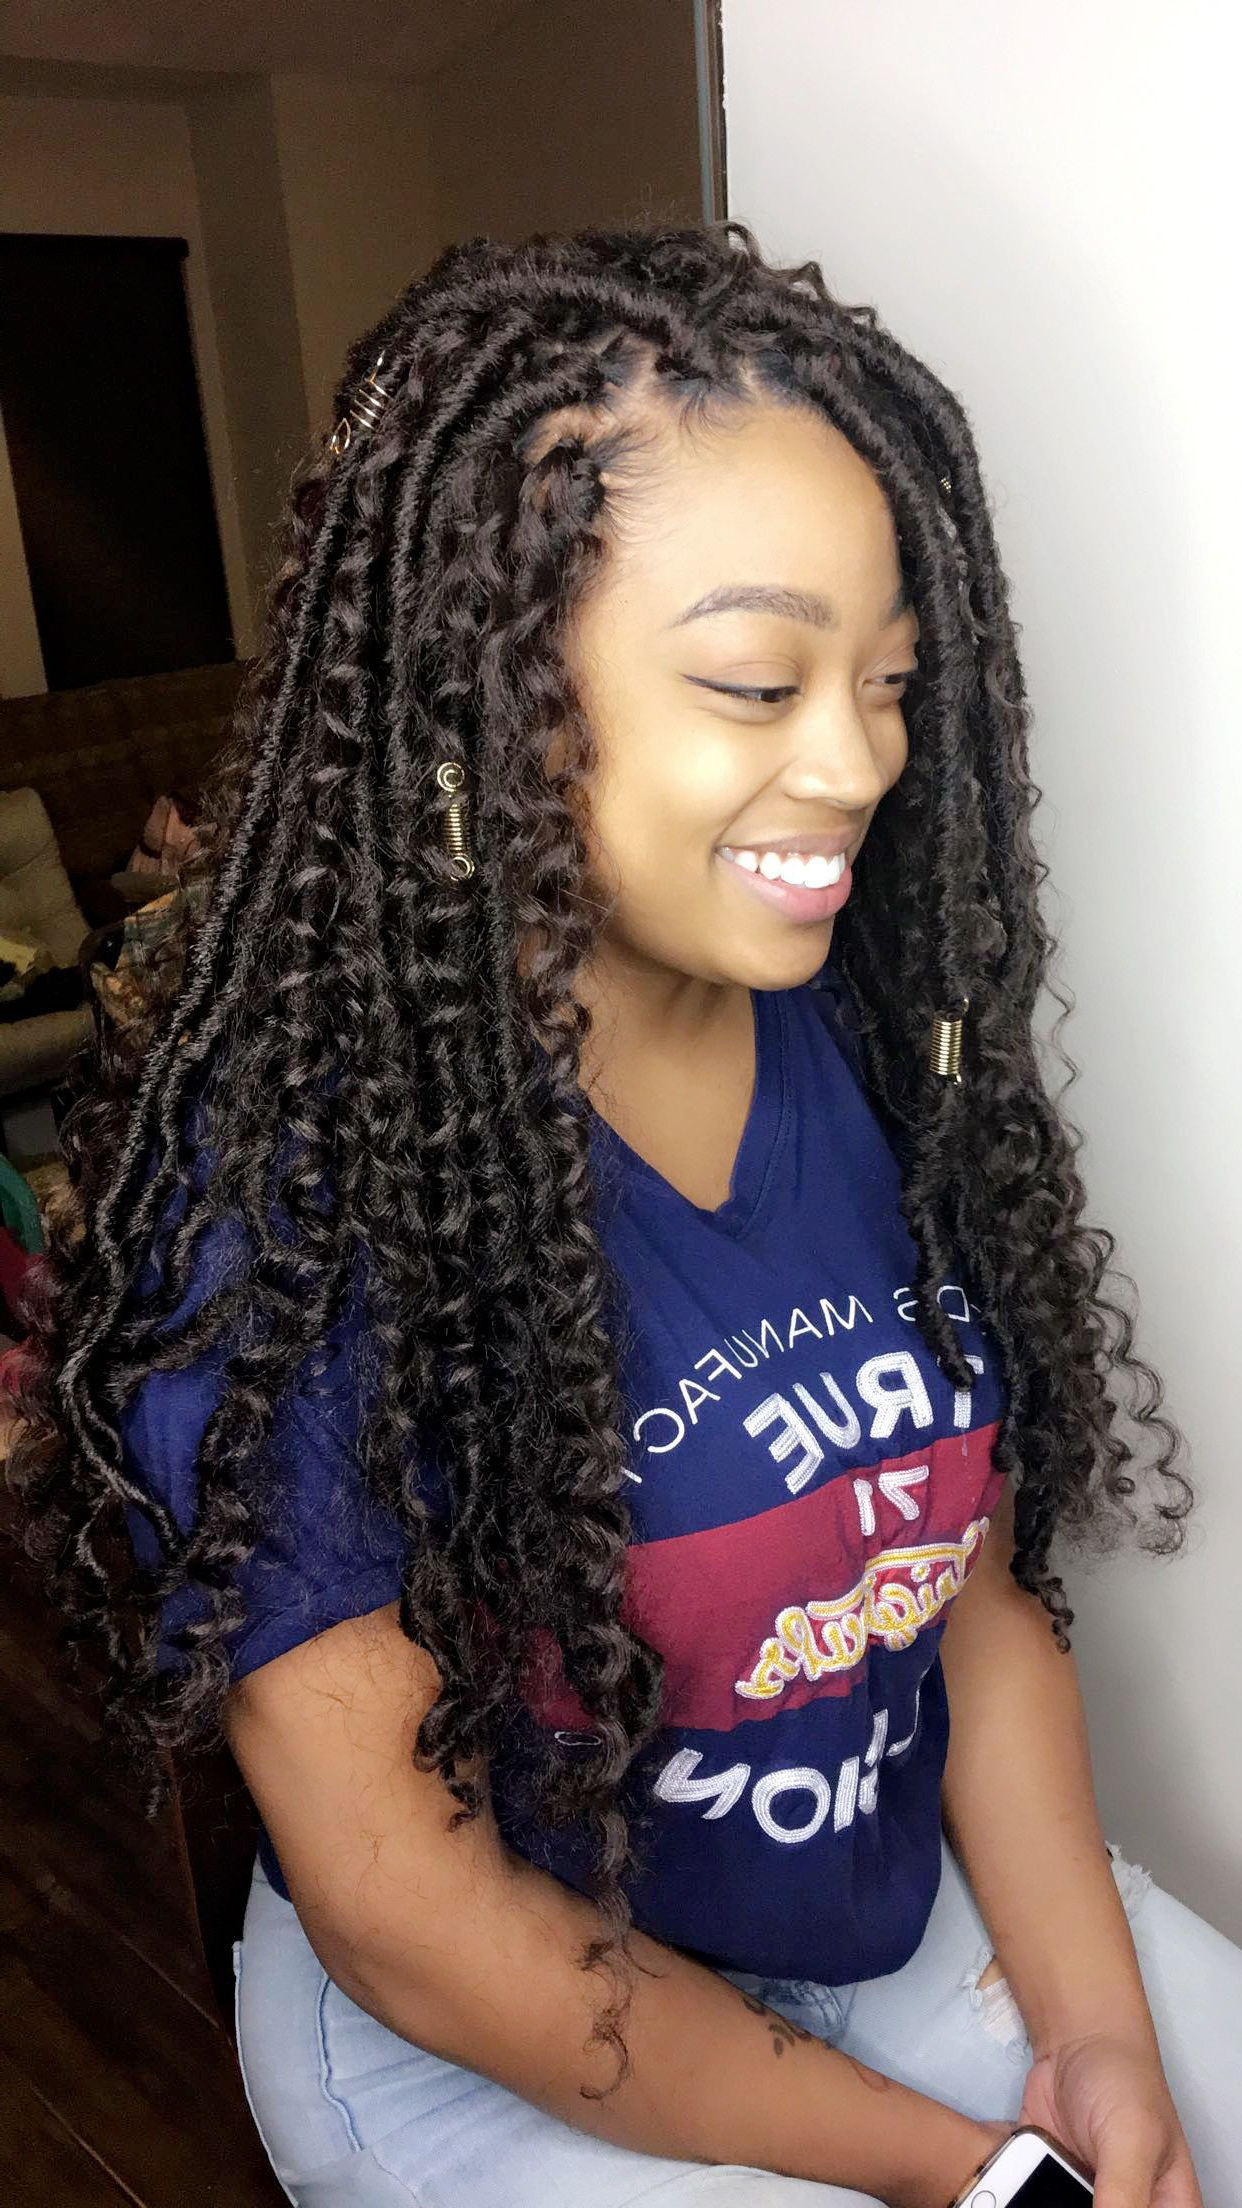 Well Known Tree Micro Braid Hairstyles Intended For Hairstyles : Crochet Hairstyles Charming Tree Braids Micro (Gallery 6 of 20)